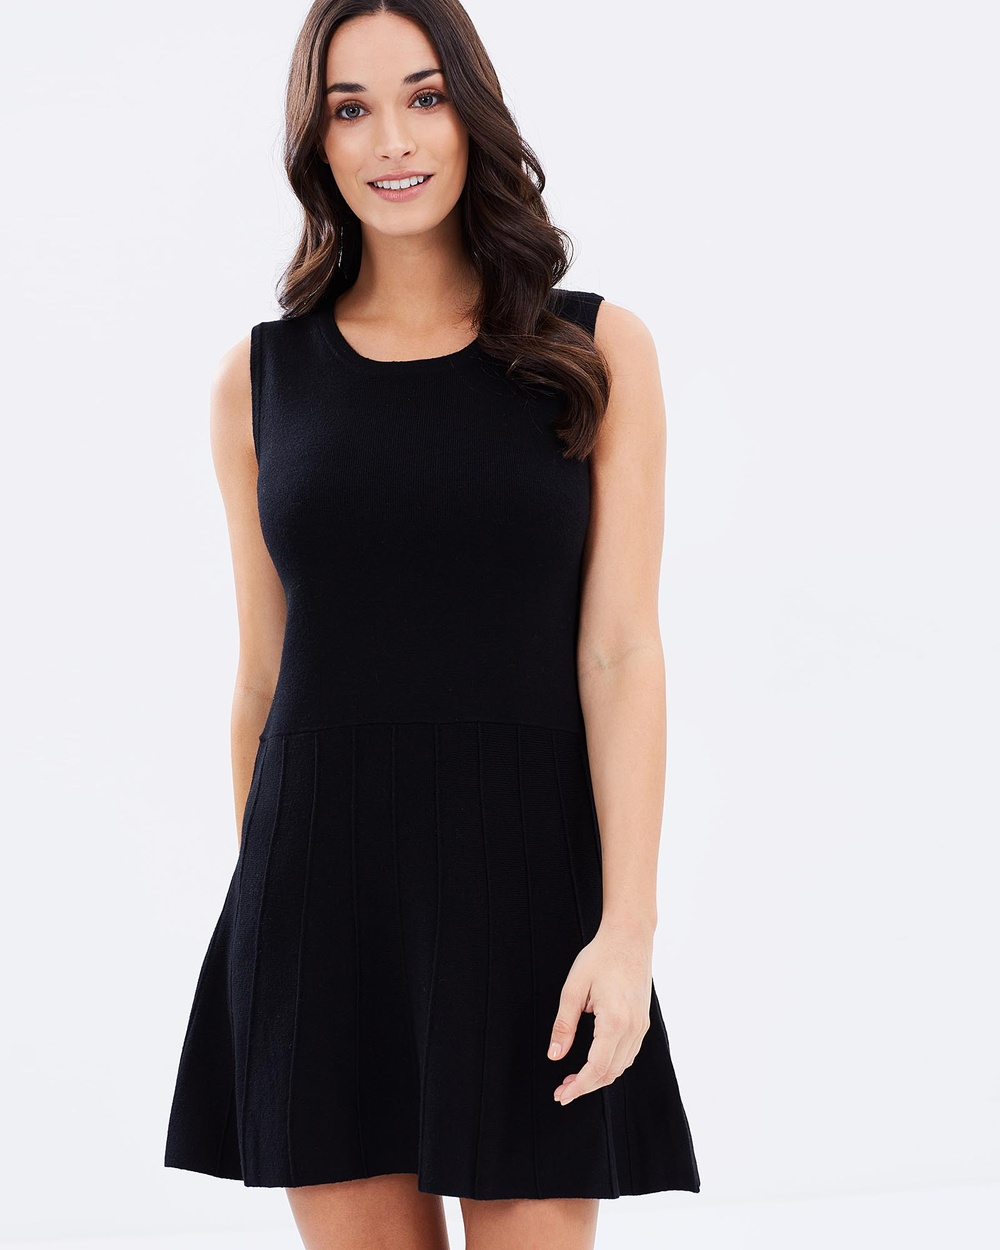 Privilege Knit Dress Dresses Black Knit Dress